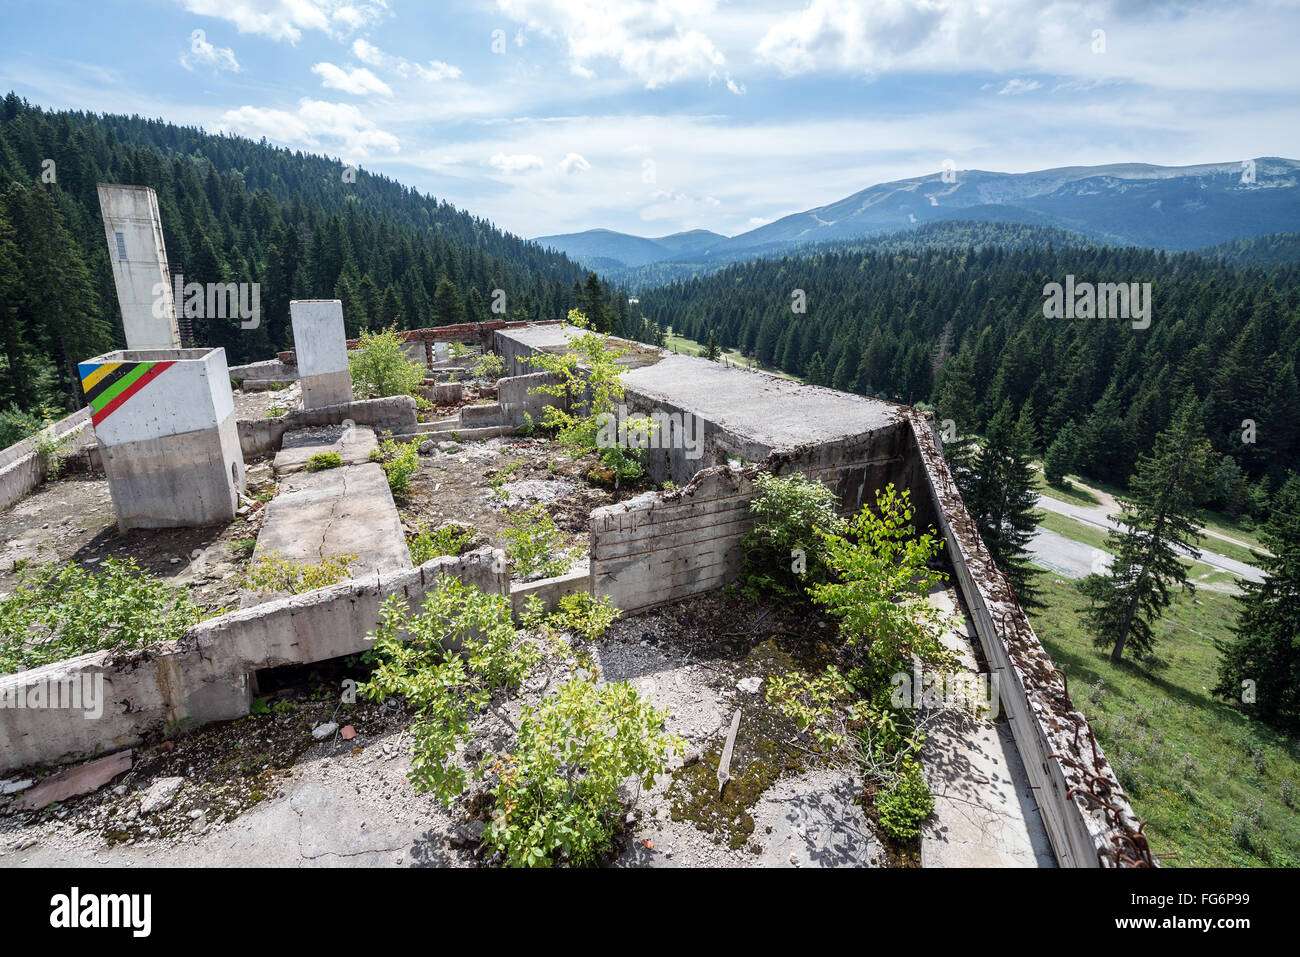 Hotel building damaged during Siege of Sarajevo near Igman Olympic Jumps in Bosnia and Herzegovina - Stock Image